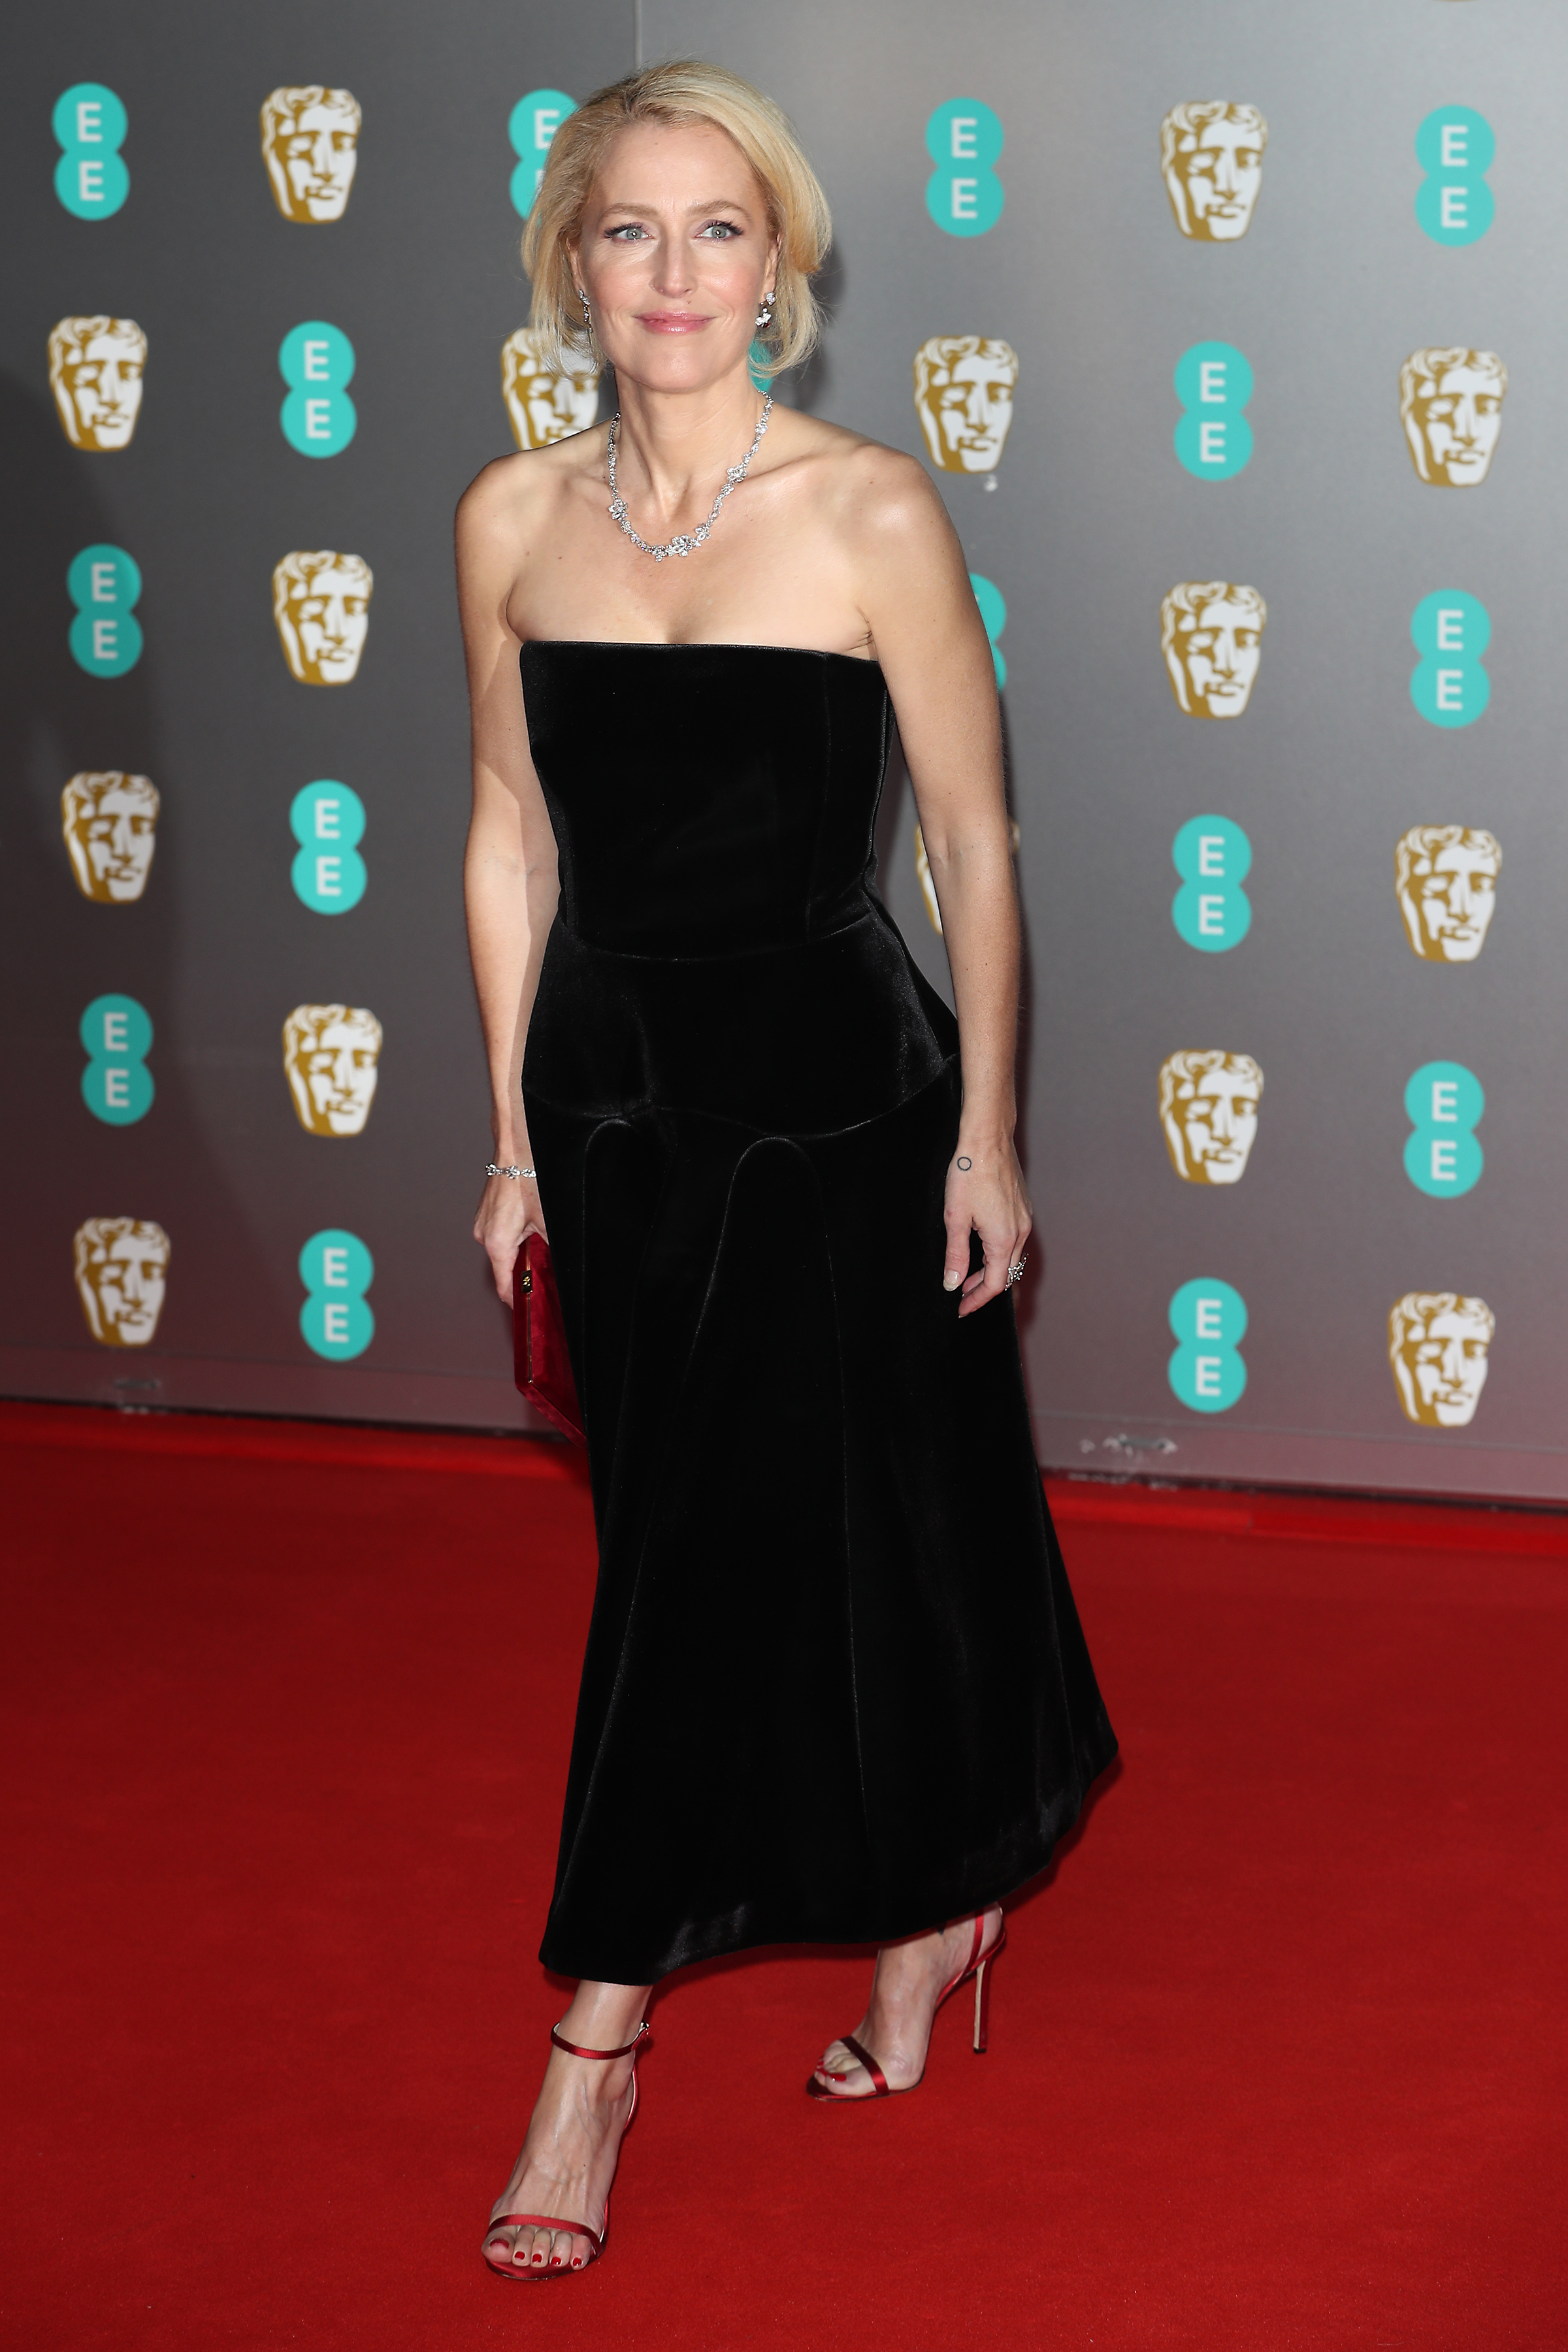 Gillian Anderson attends the British Academy Film Awards 2020 at Royal Albert Hall on February 02, 2020 in London, England.